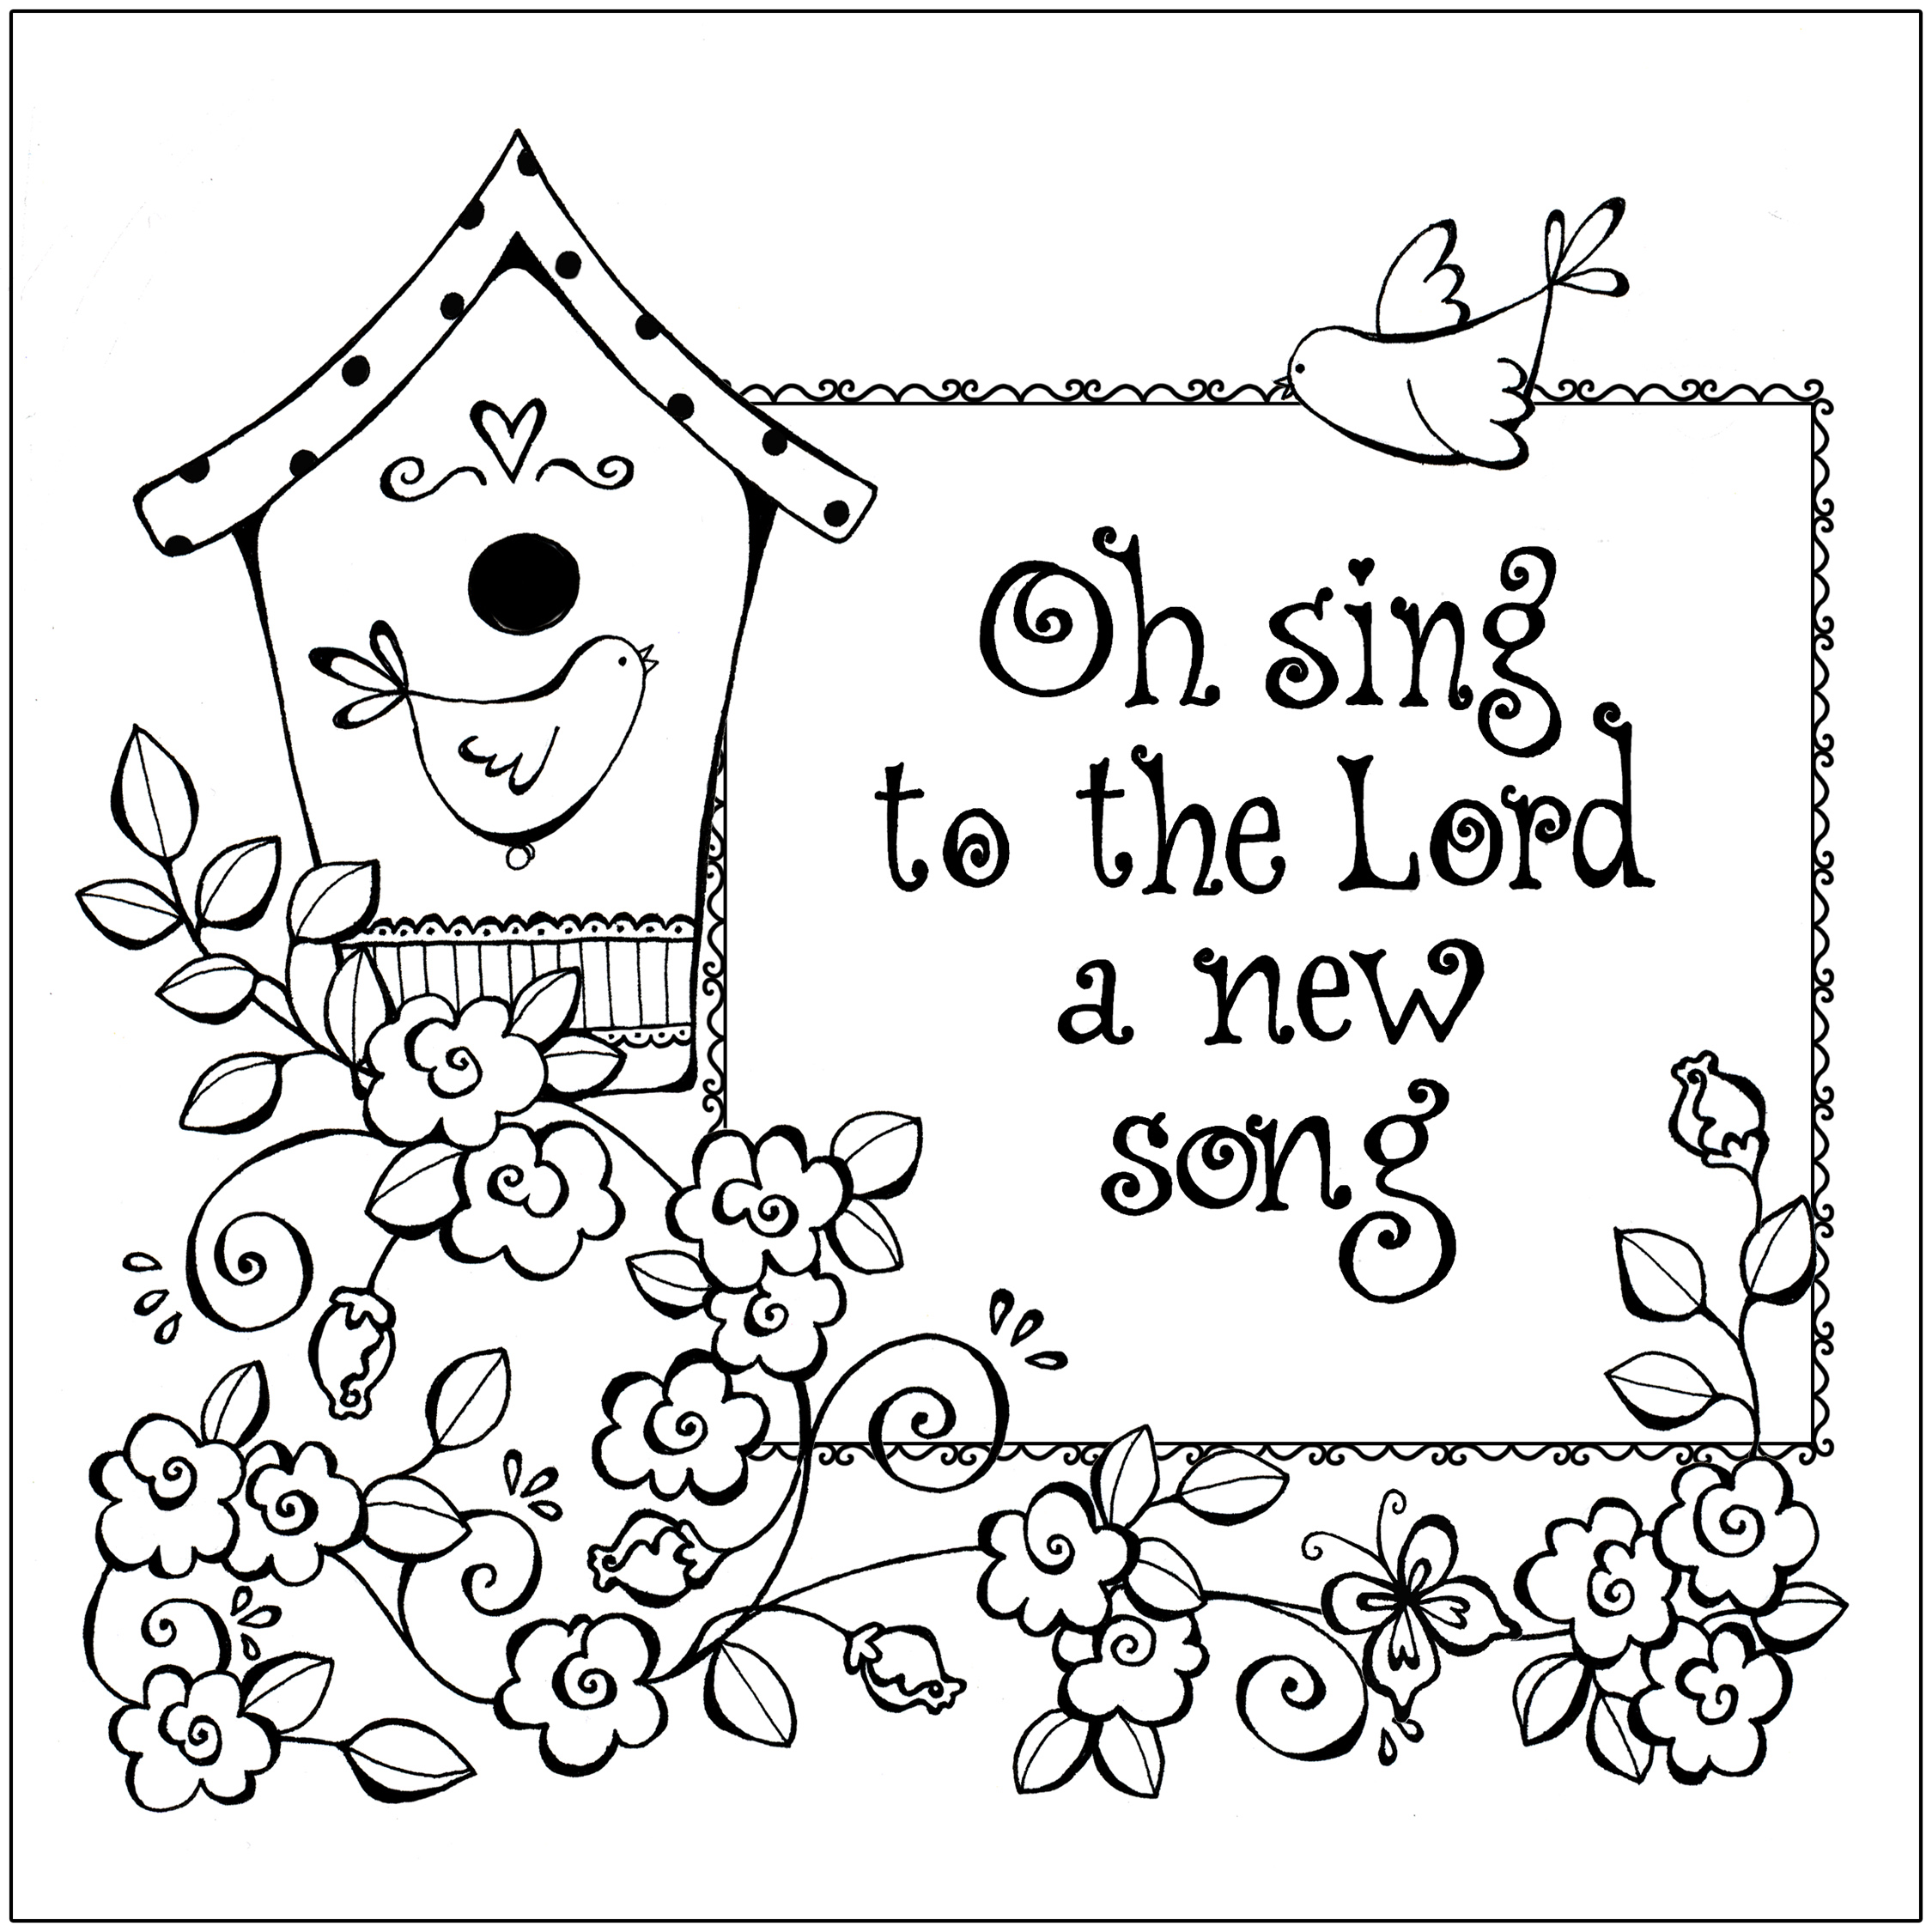 teen spiritual coloring pages - photo#34